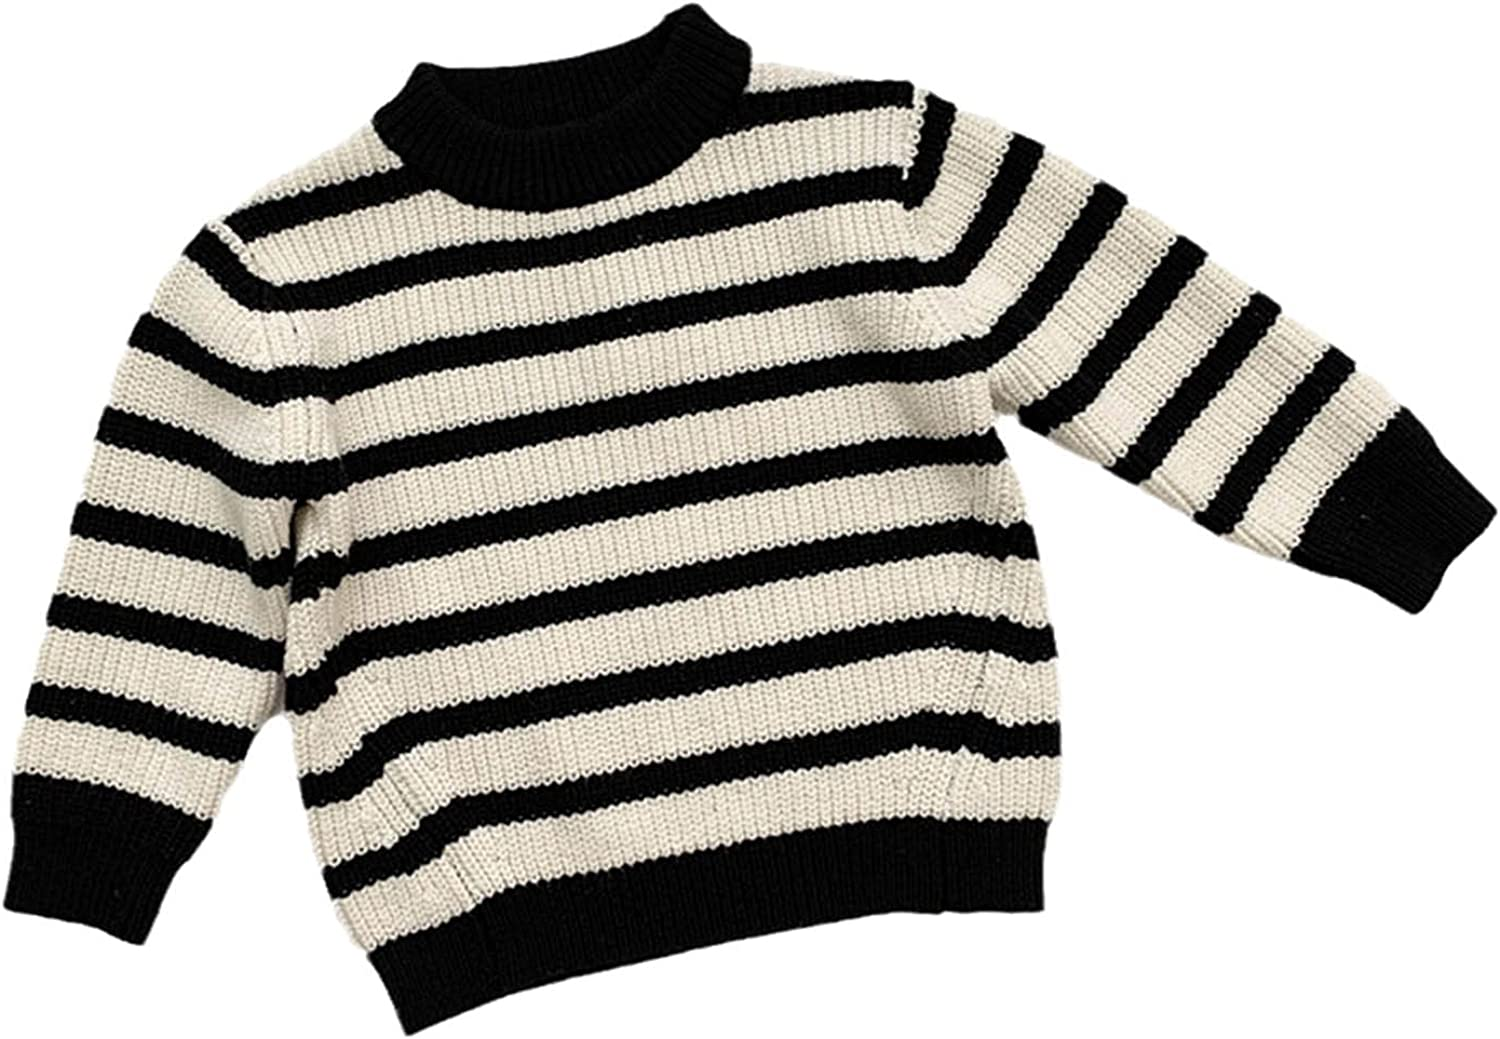 Yiqinyuan Fashion Autumn Winter Girls and Boys Sweaters Round Neck Knitwear Striped Sweater Children Clothing Sweaters